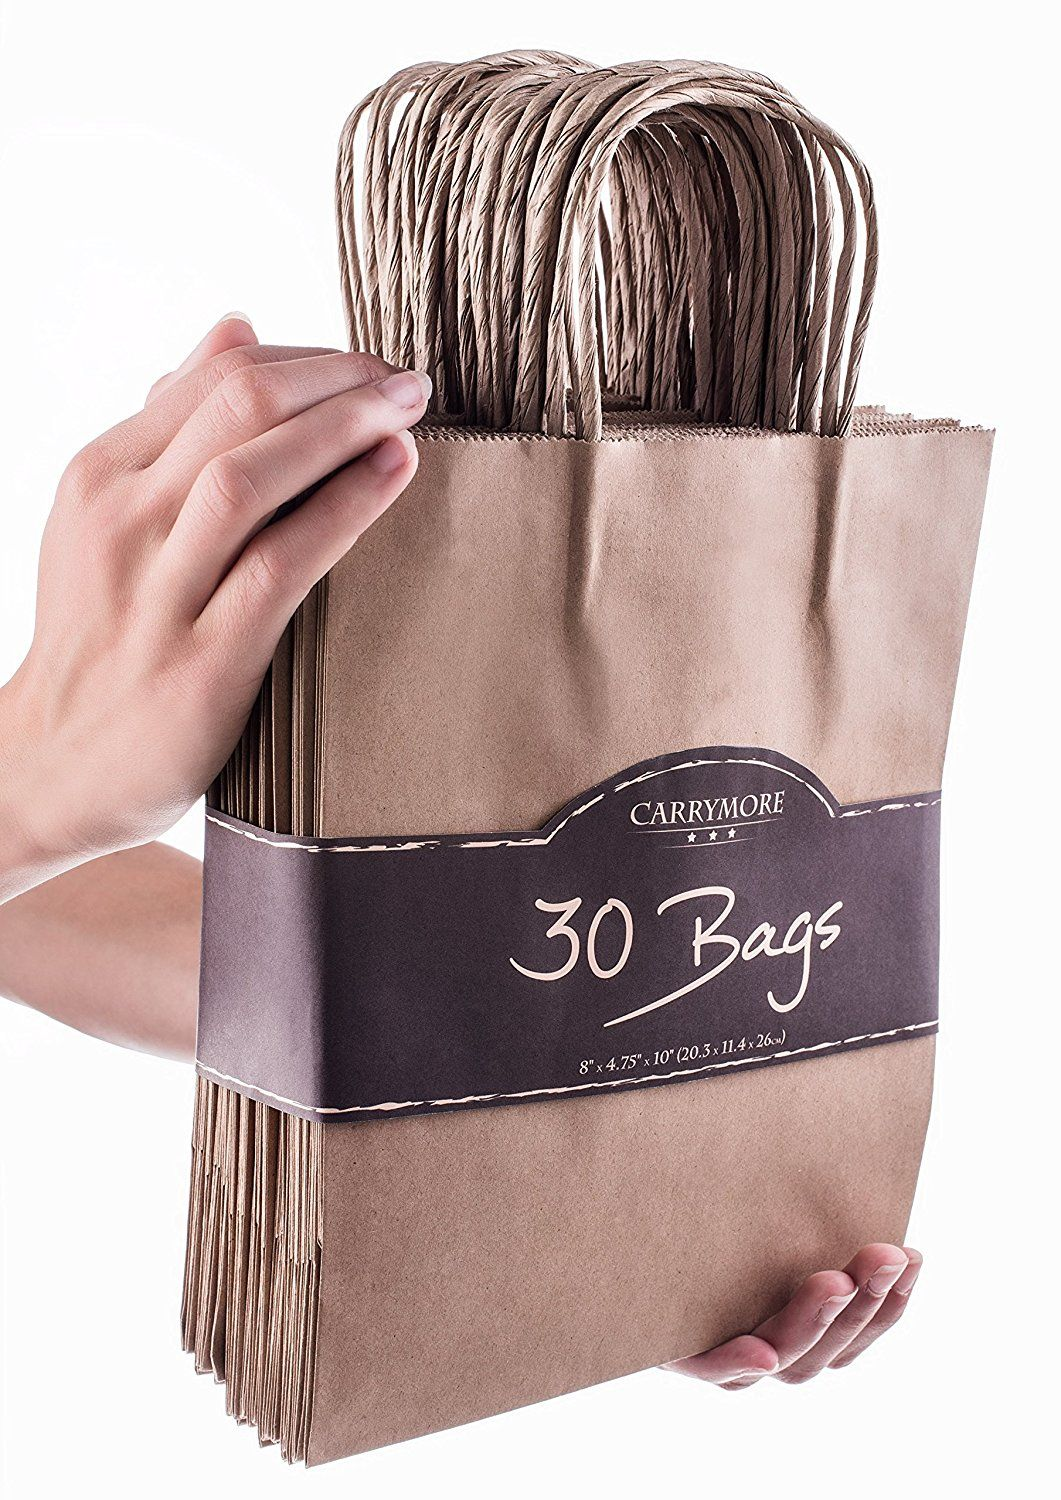 Extra strong craft brown paper bag handles for safe